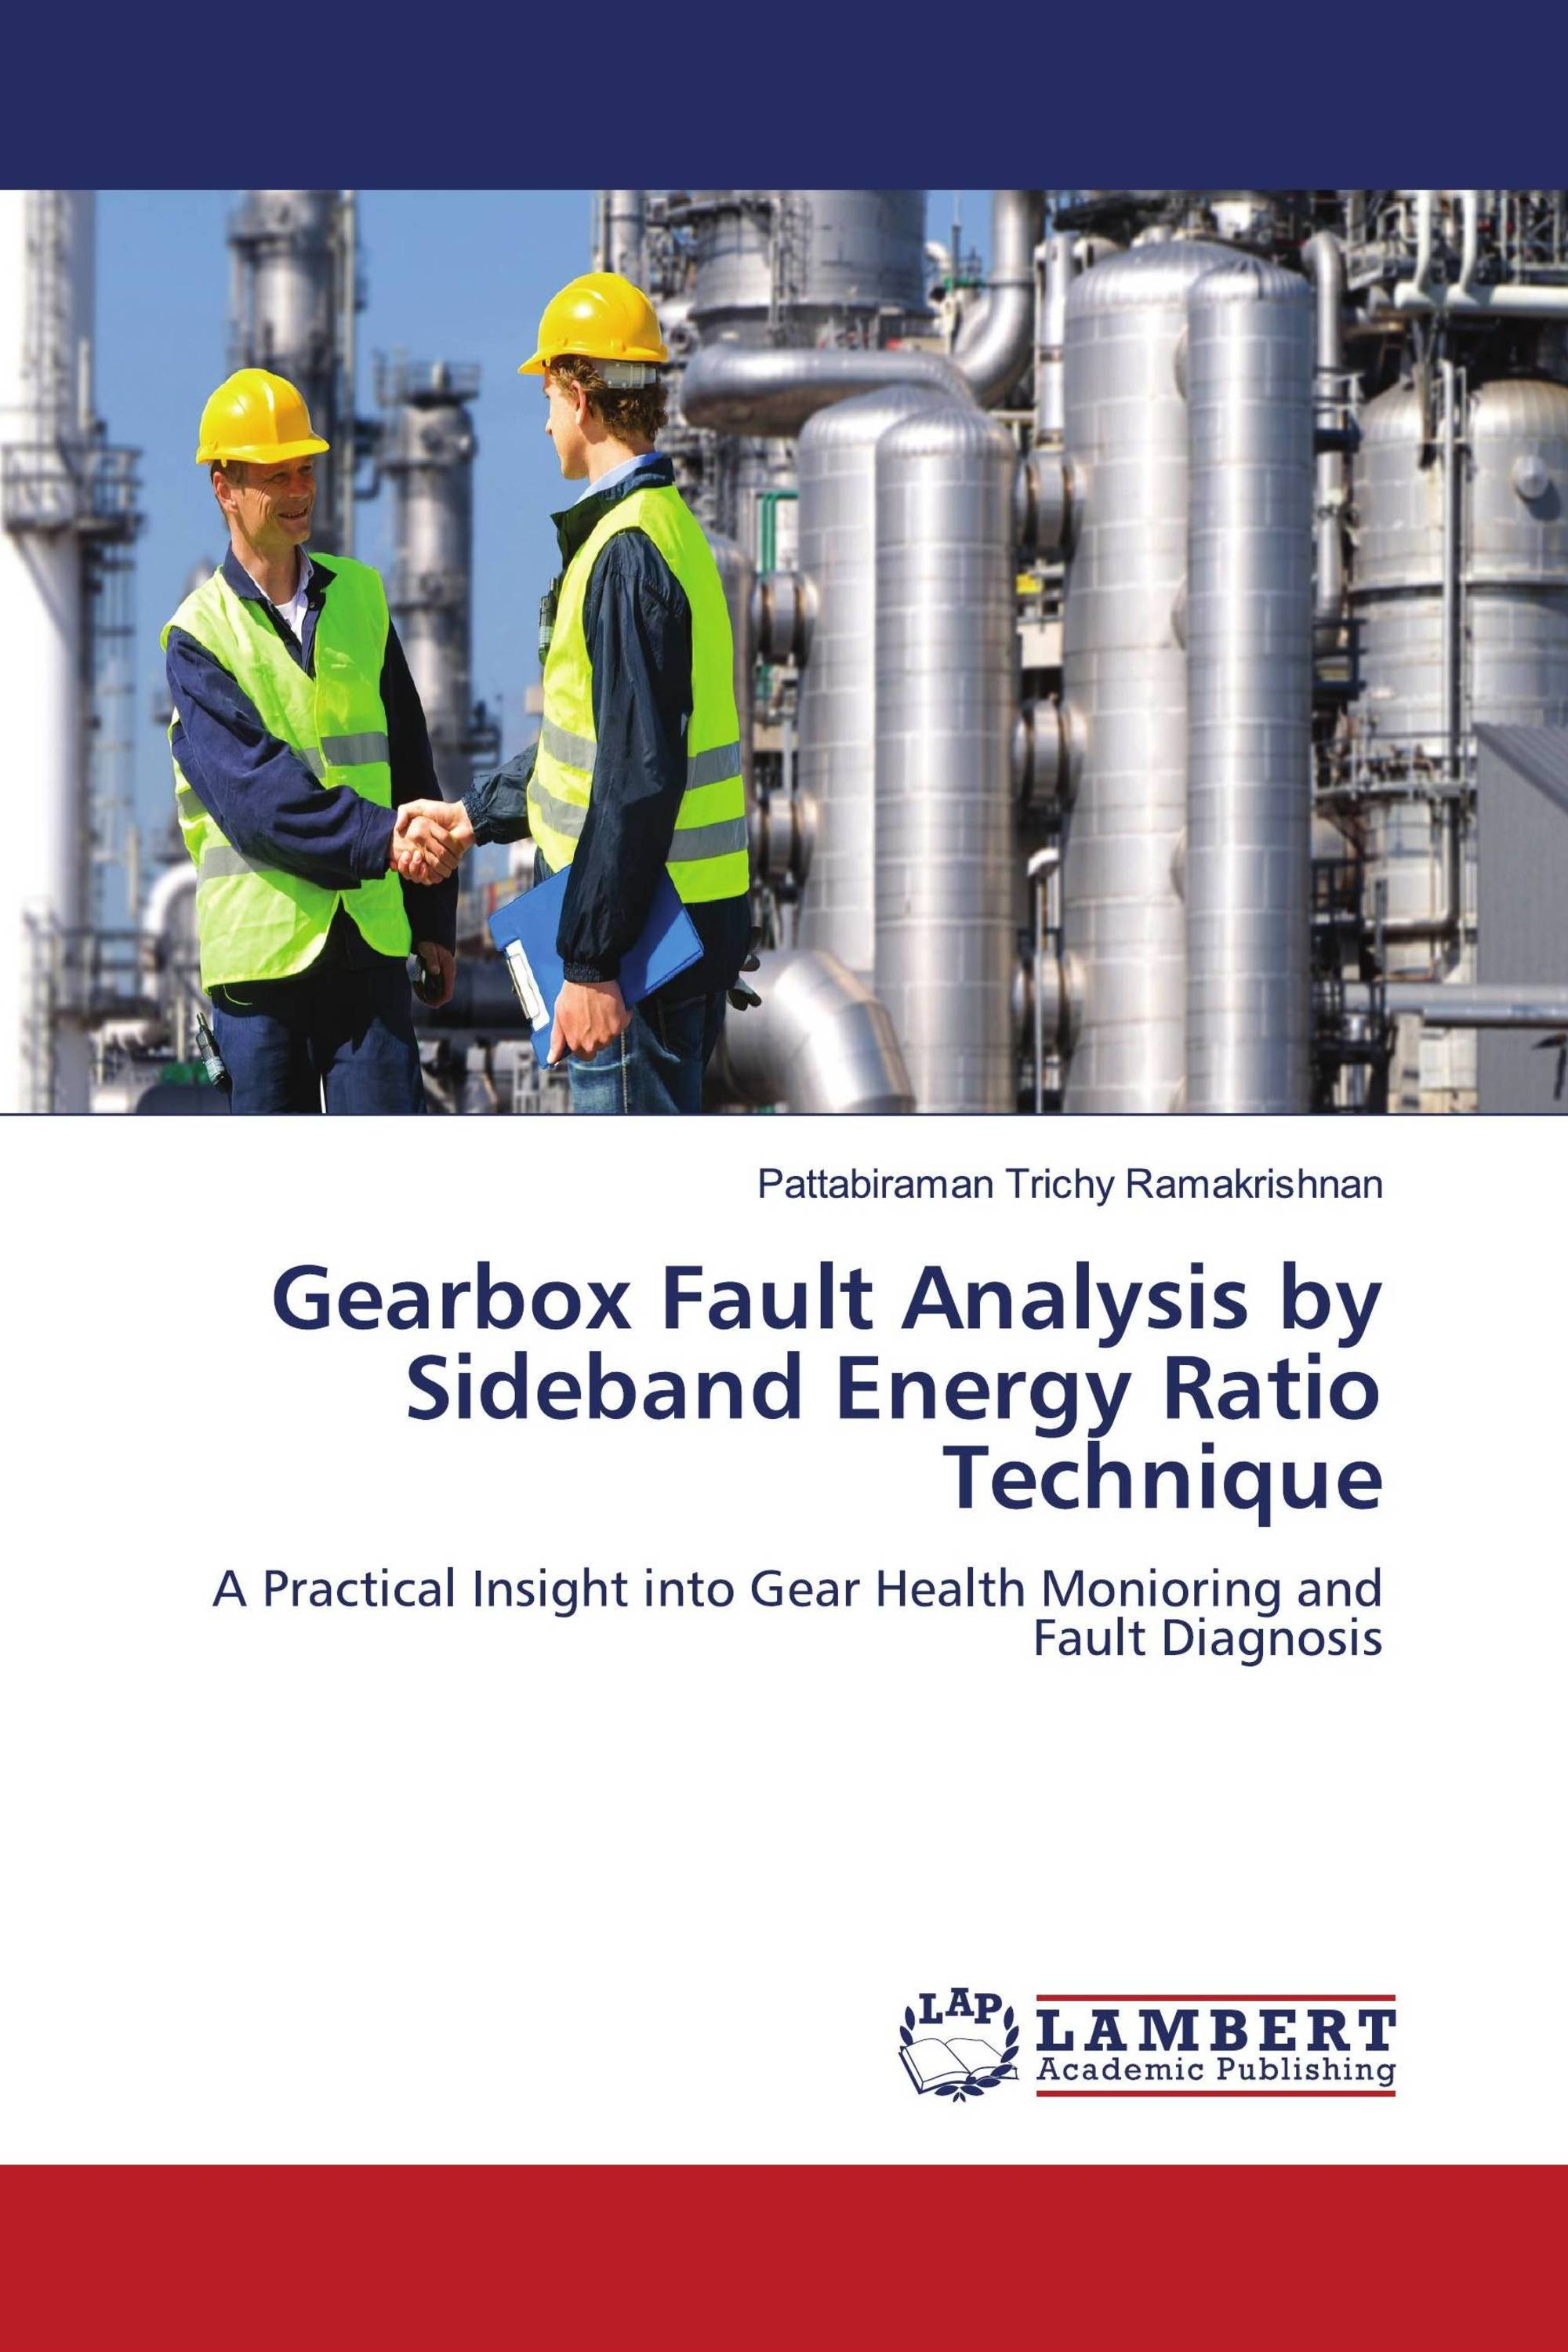 Gearbox Fault Analysis by Sideband Energy Ratio Technique